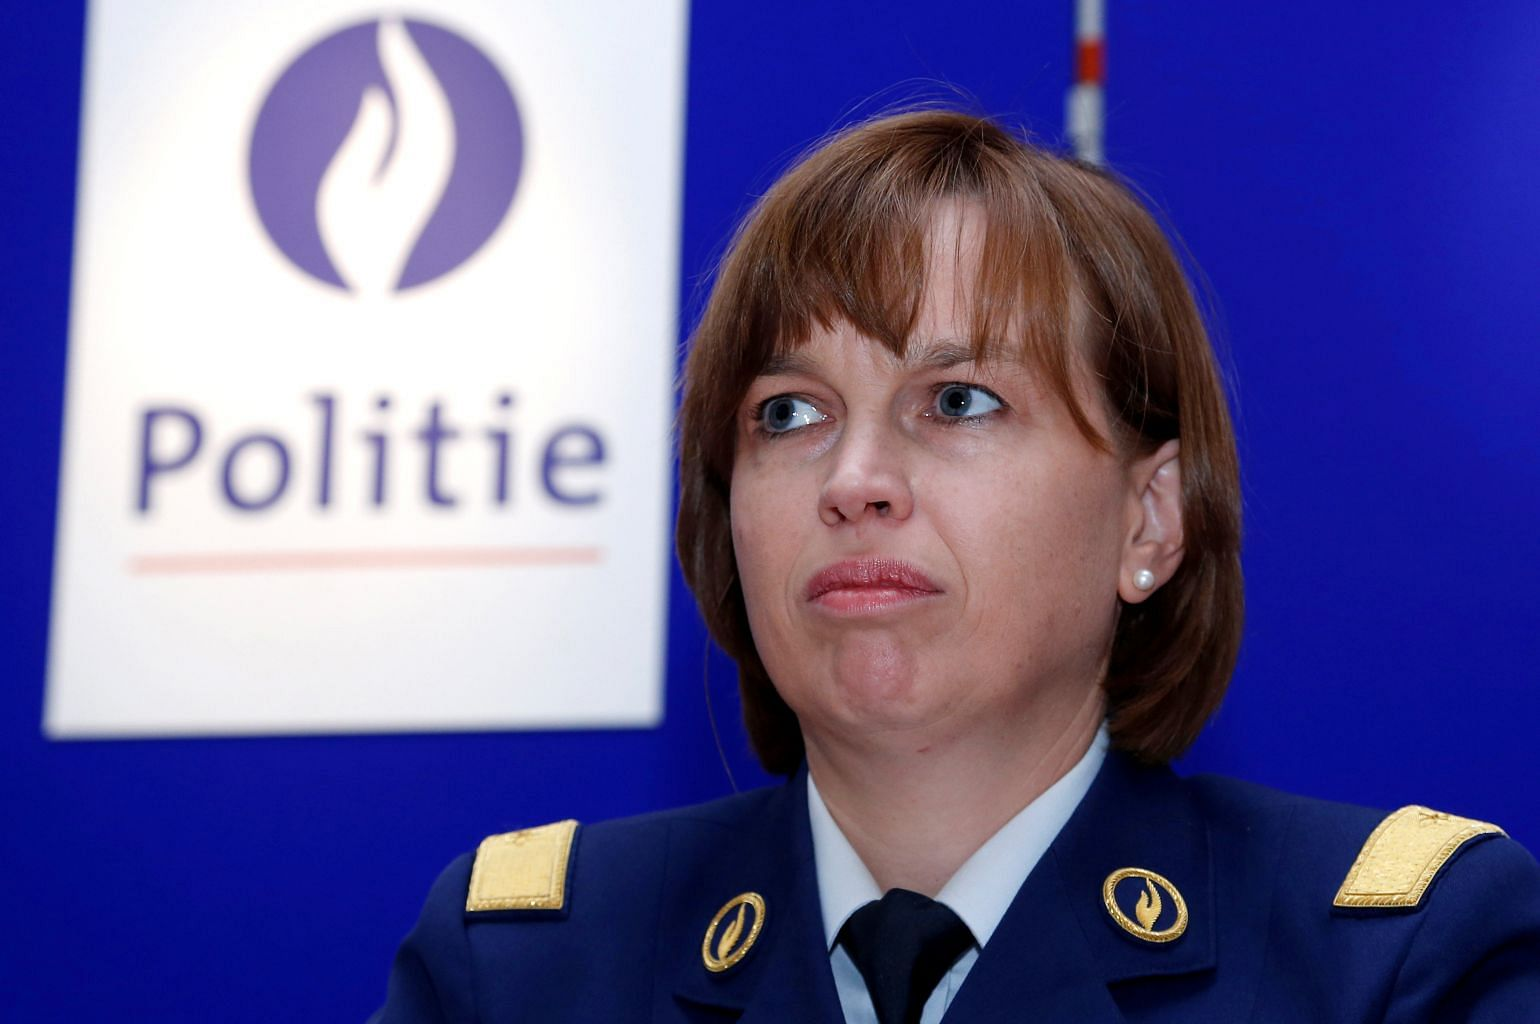 Commissioner of the Brussels police - a transvestite (see)